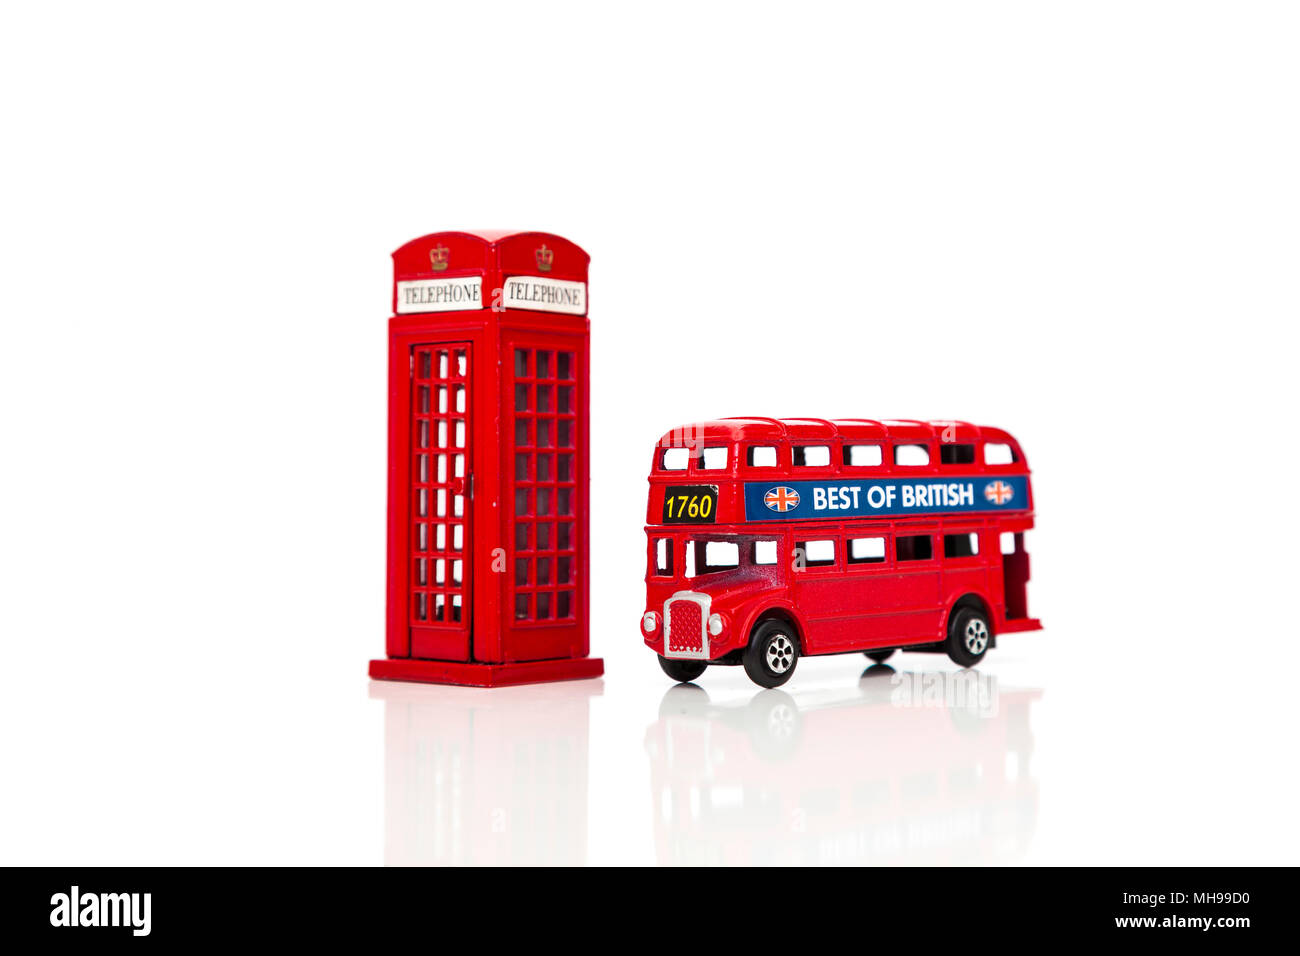 A Red London Doubledecker Bus and red telephone box. Isolated on white background - Stock Image